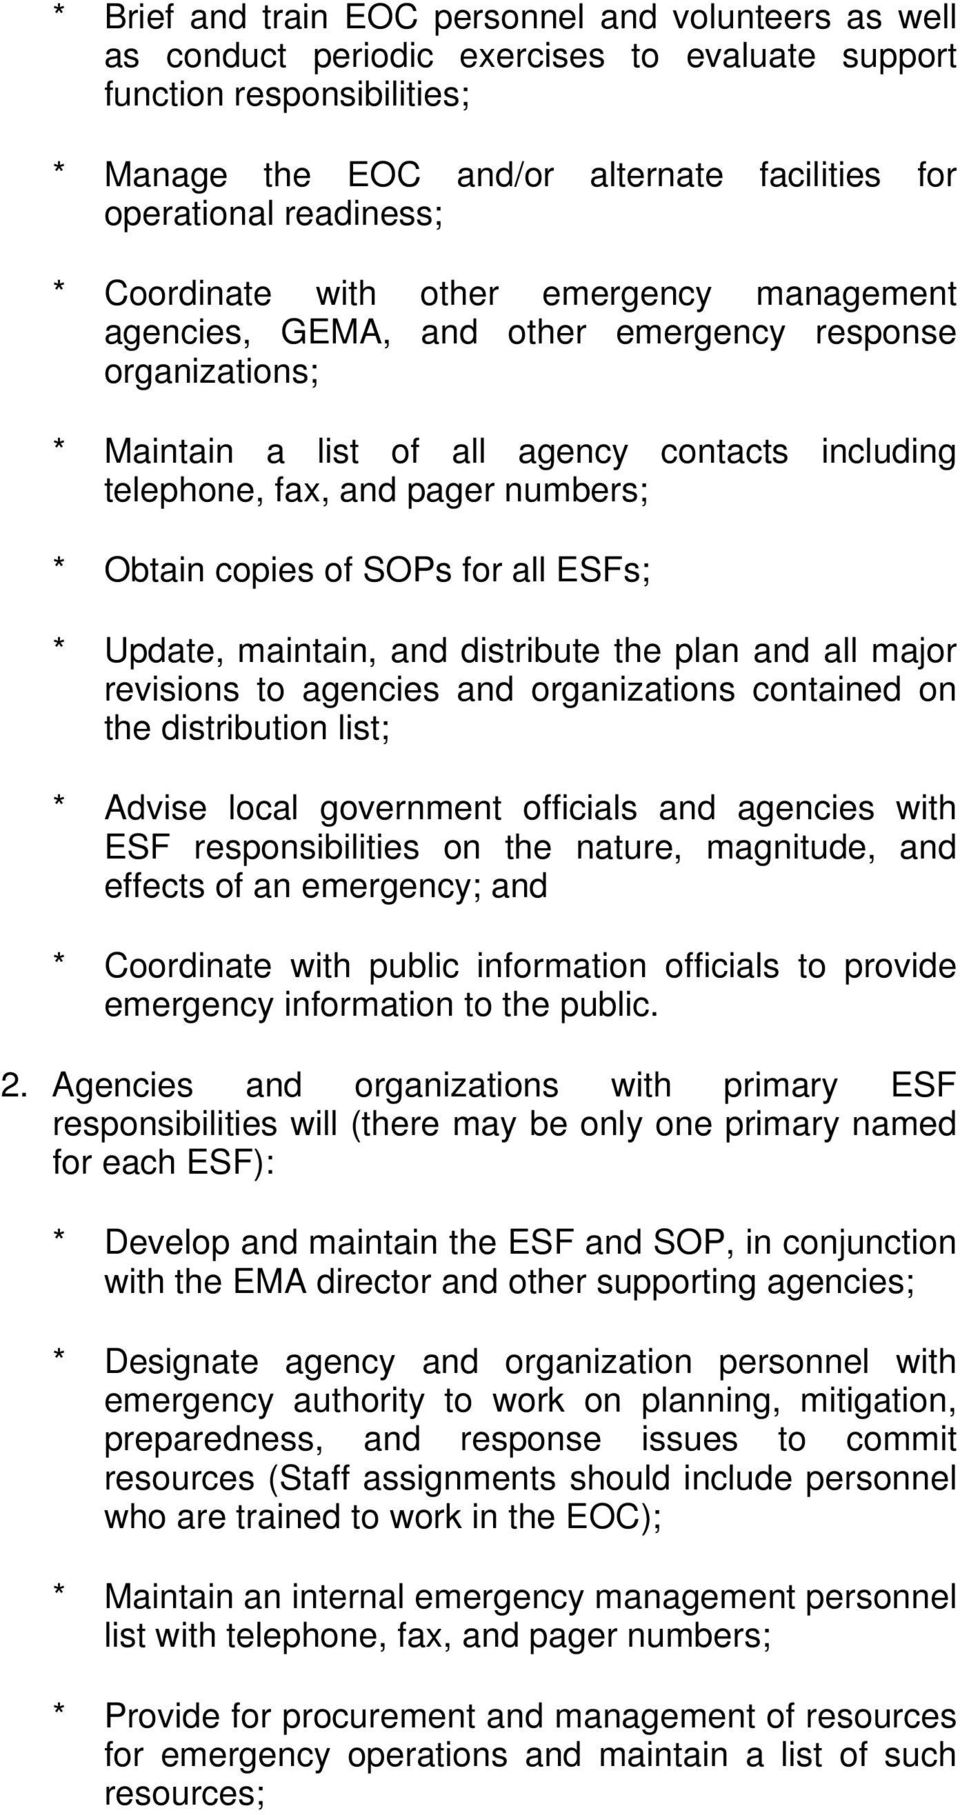 numbers; * Obtain copies of SOPs for all ESFs; * Update, maintain, and distribute the plan and all major revisions to agencies and organizations contained on the distribution list; * Advise local